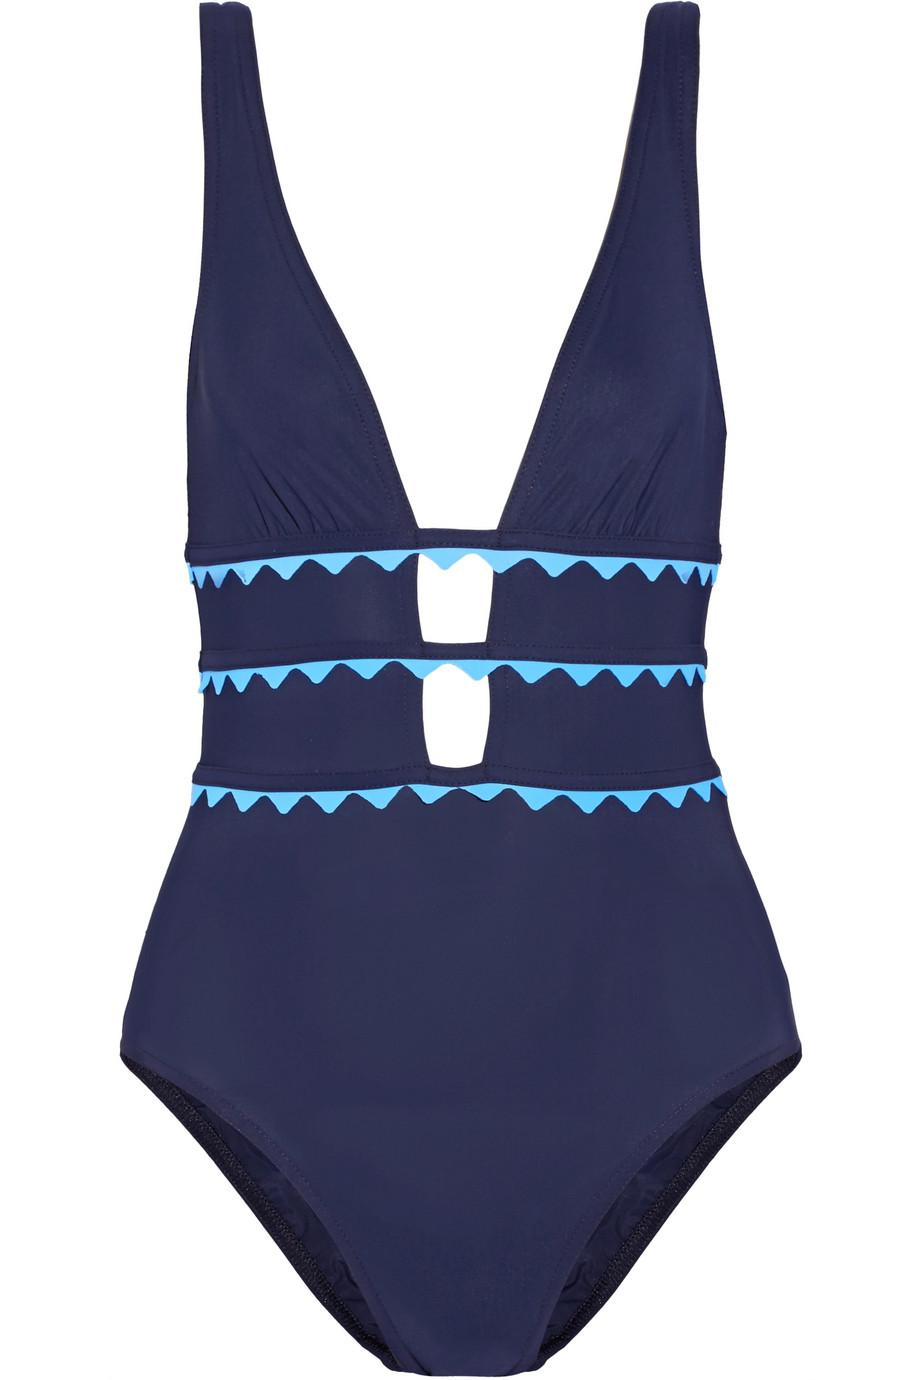 New Wave Appliquéd Cutout Swimsuit - Storm blue Karla Colletto Best Place To Buy Online Cheap Cost Shipping Discount Sale Outlet Locations Sale Online Discount Manchester Great Sale 8PB5PMG